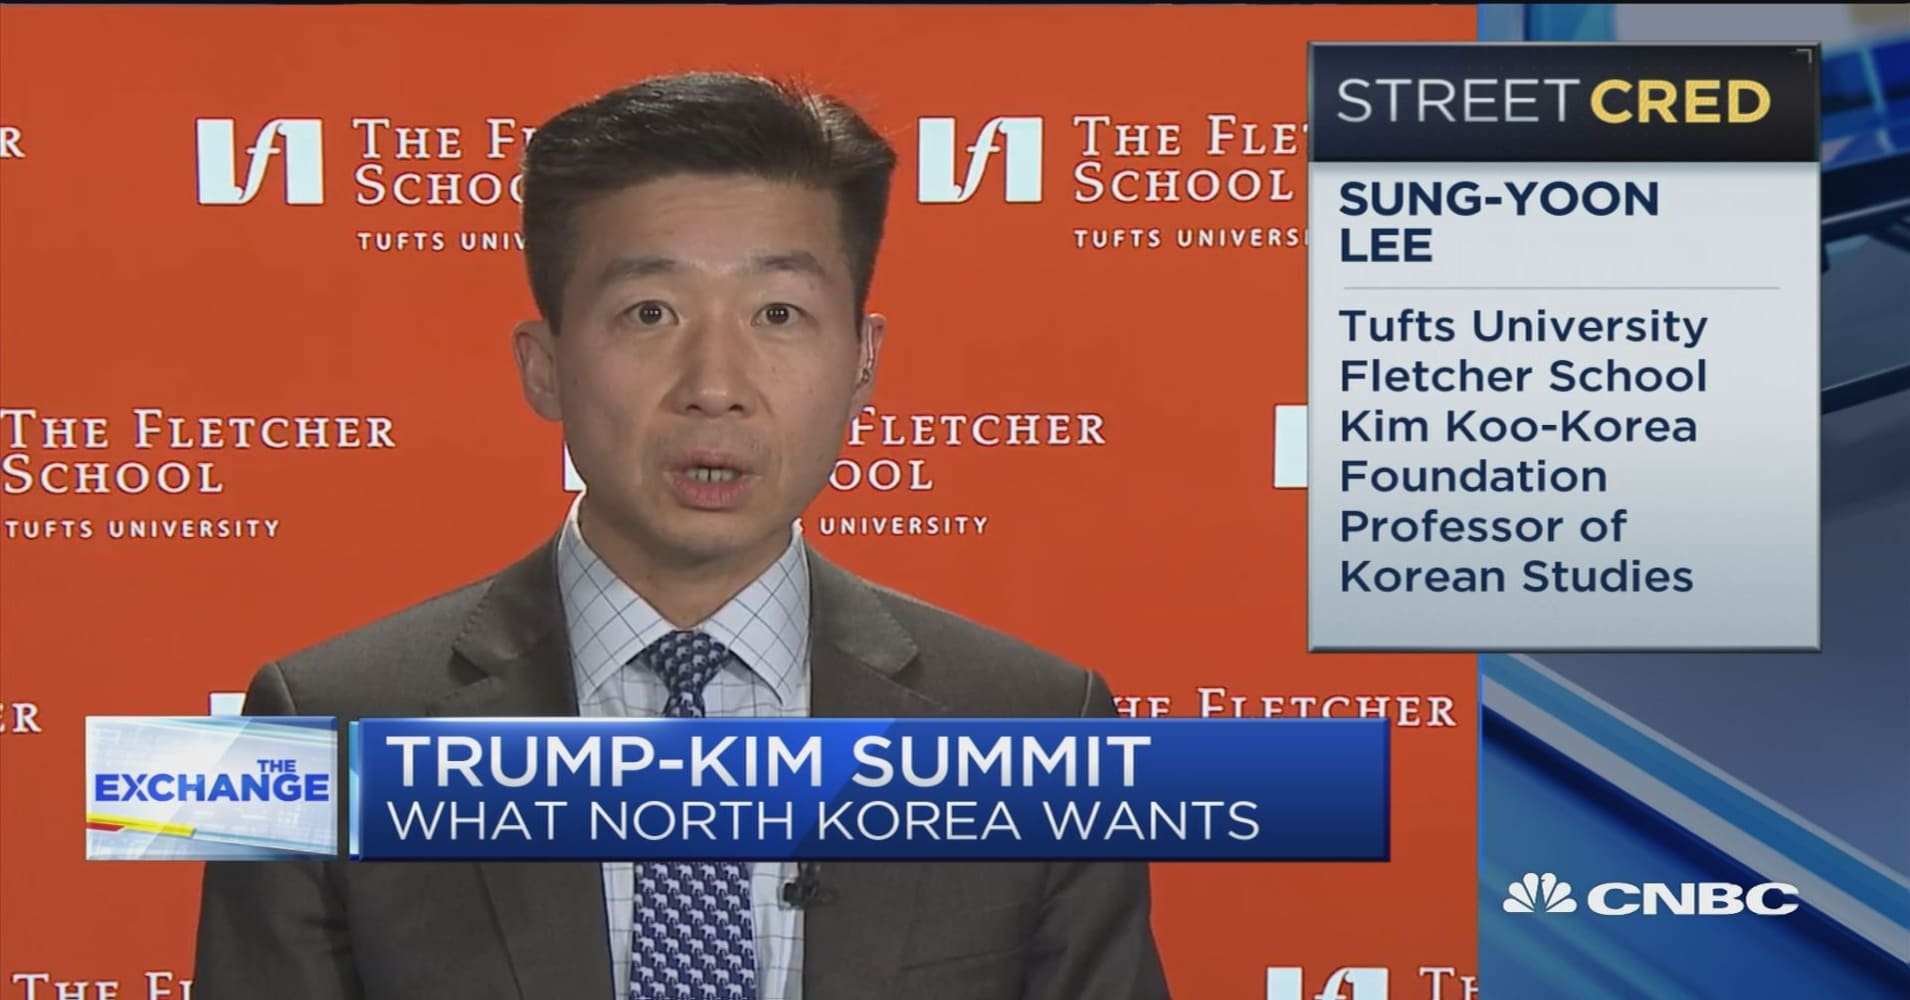 Trump-Kim Summit could result in end to Korean war, says Tufts professor